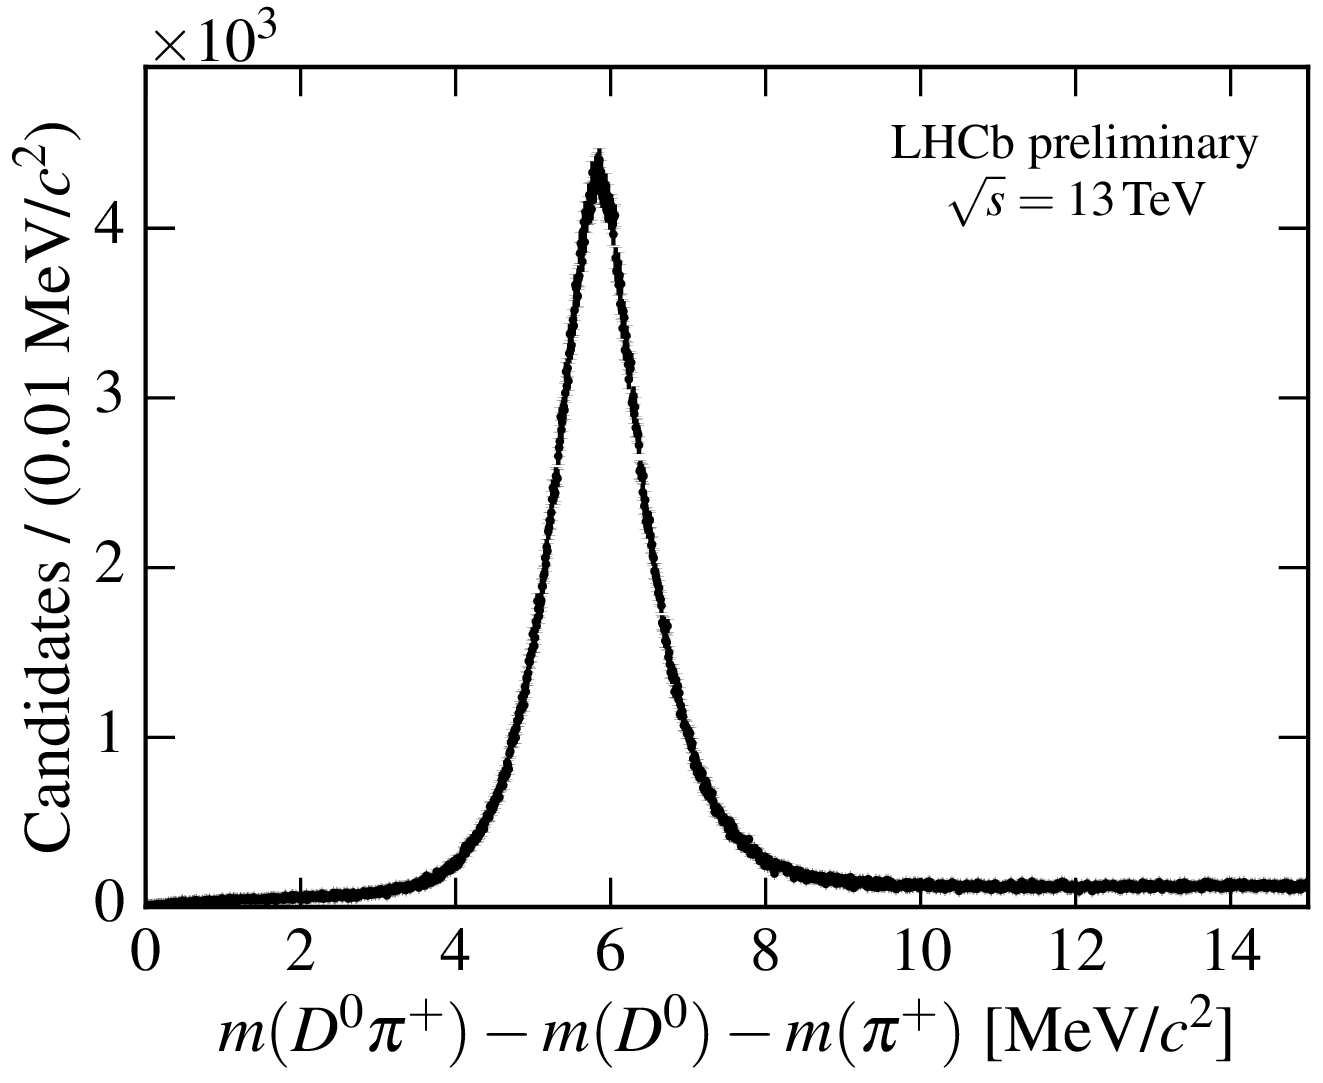 m(D*+) - m(D0) - m(pi+) mass distribution